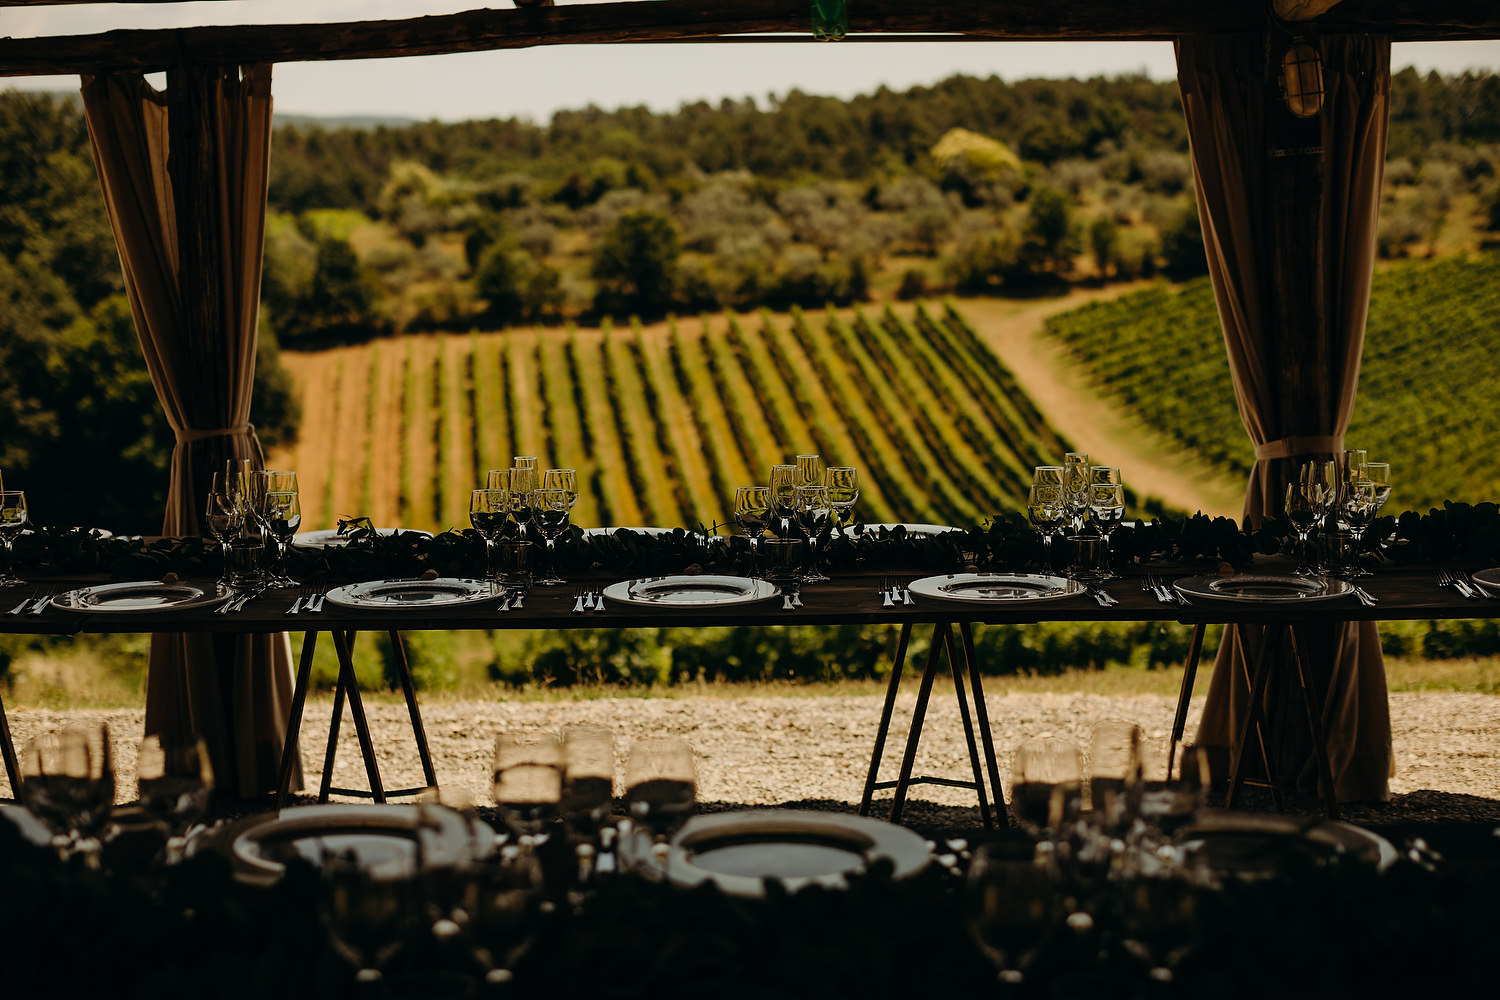 Vineyard in background of wedding reception